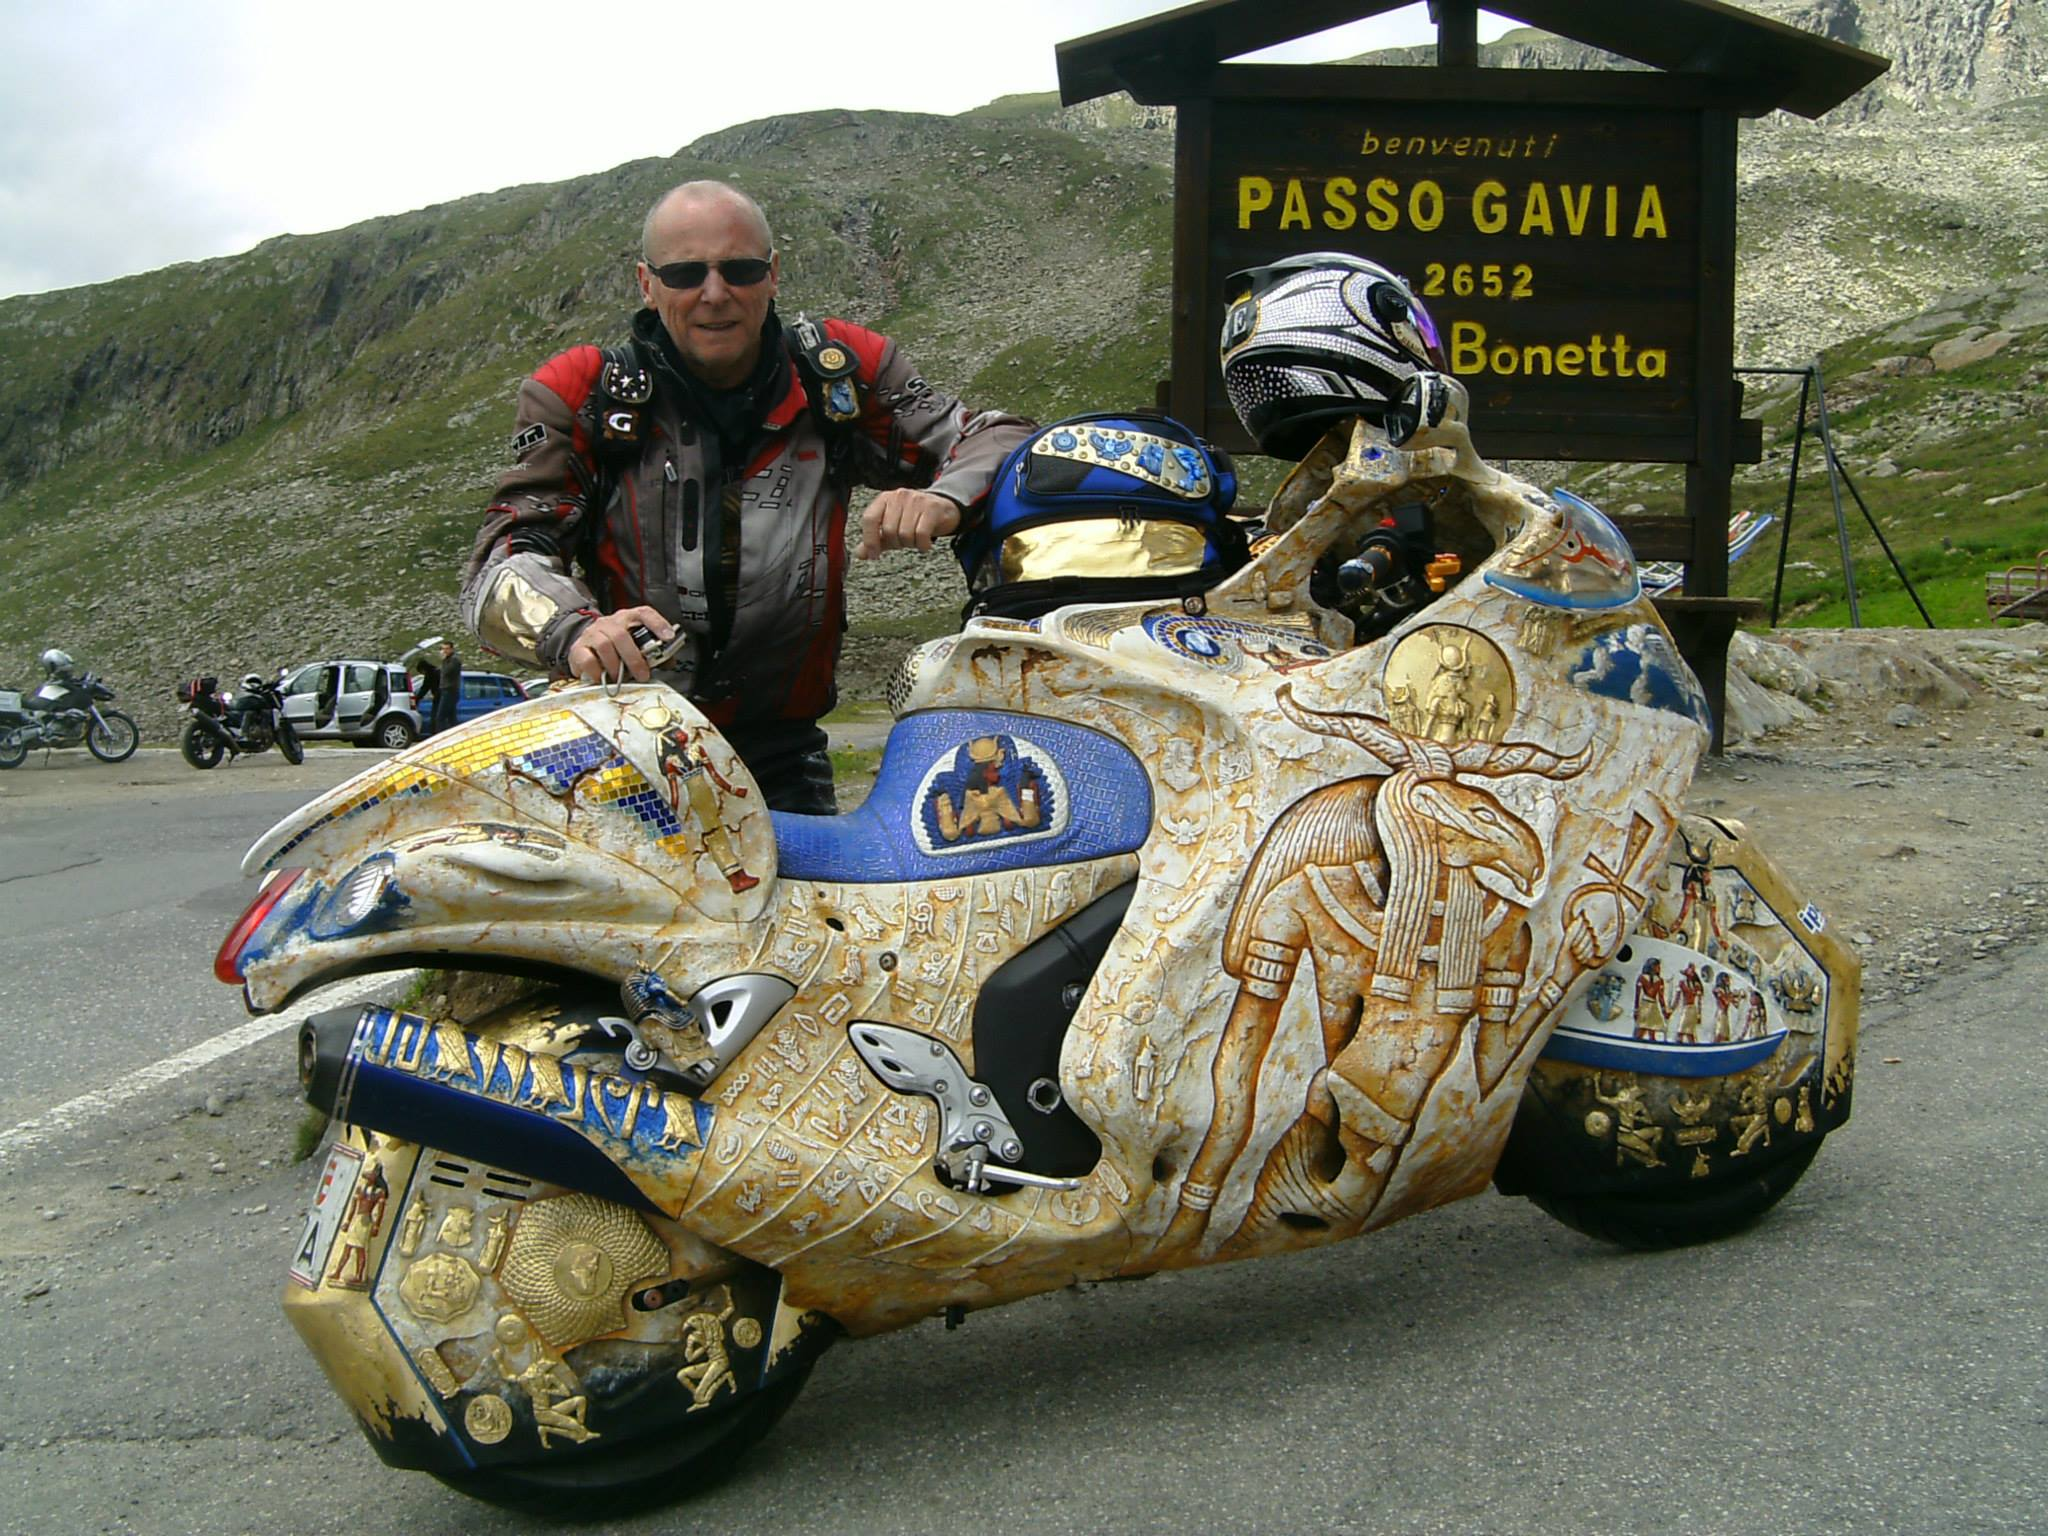 A Pharaoh S Hayabusa On The Recently Open Gavia Pass 61114 on electric car humor